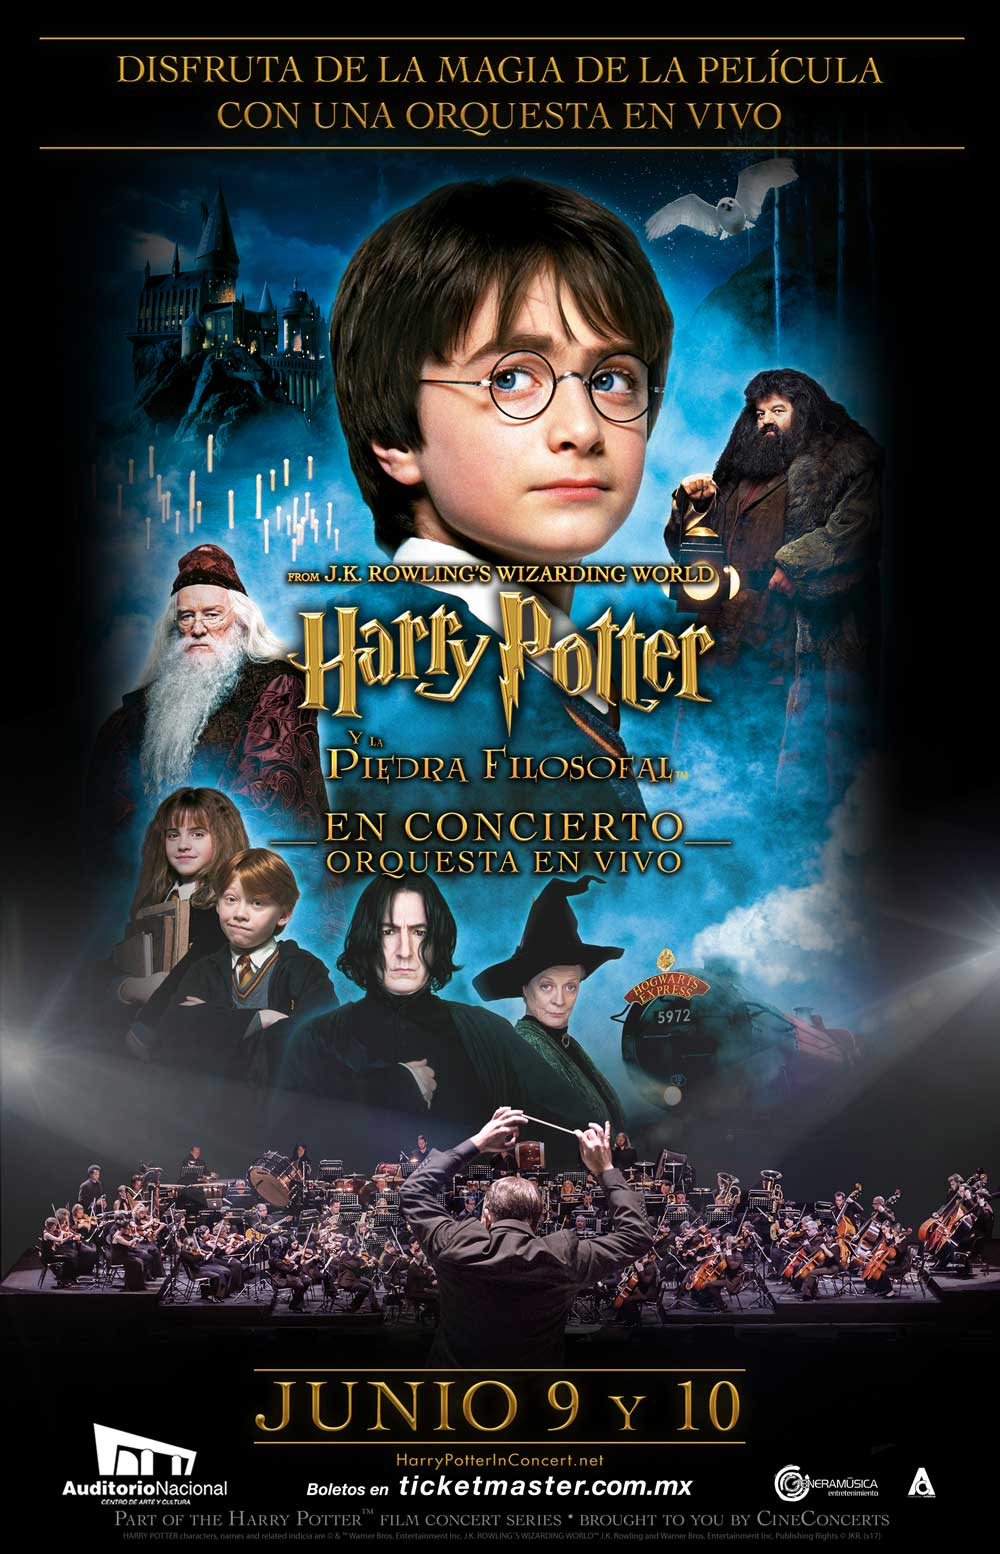 Harry Potter con orquesta en vivo en Auditorio Nacional – Reconoce MX